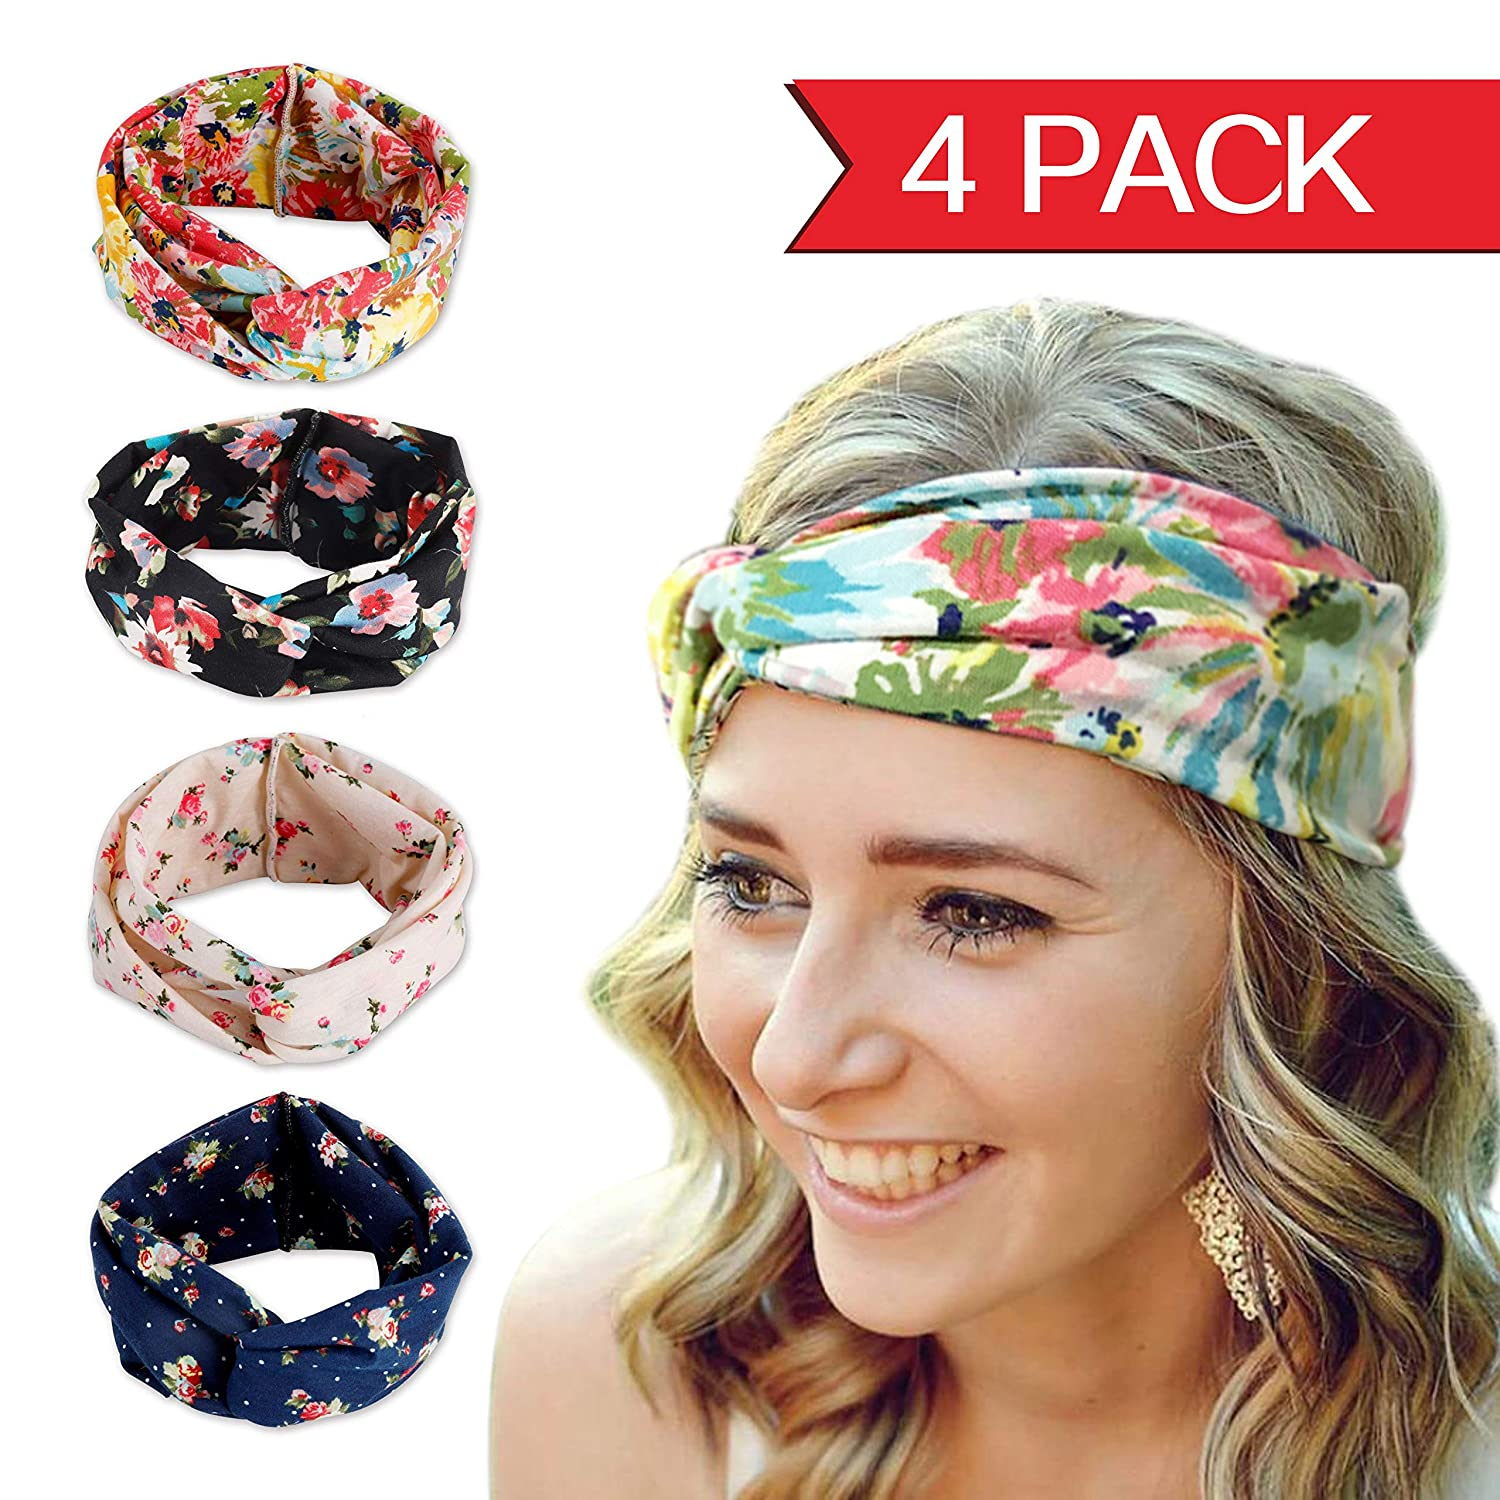 46ed077e95a3 Amazon.com   Fashion Elastics Headbands for Women - Angel Kiss 4 Pack  Multi-Style Boho Floal Style Criss Cross Head Wrap Hair Wrap Band - Perfect  for Yoga ...